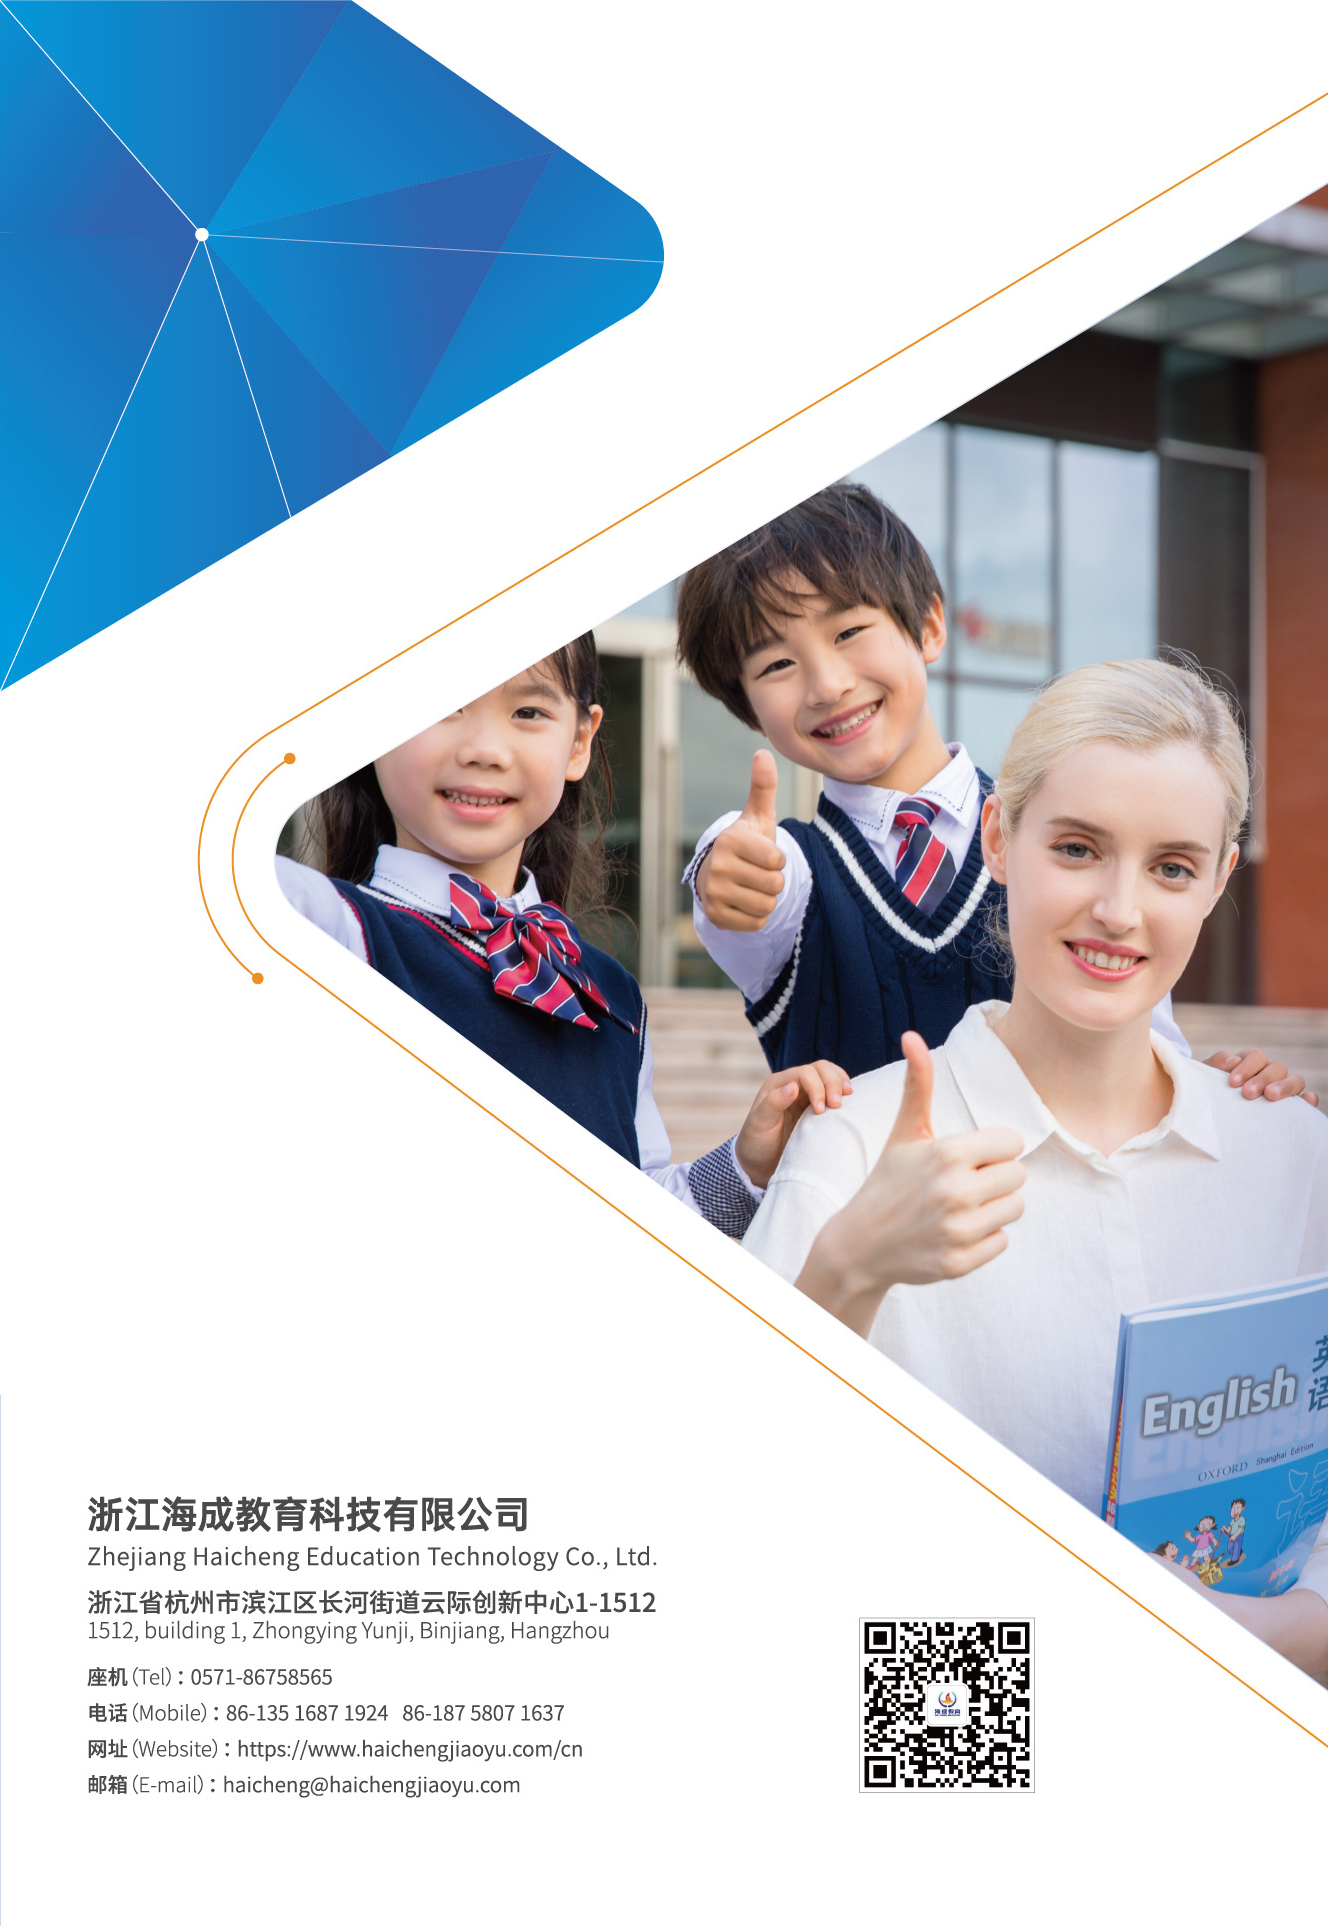 Zhejiang Haicheng Education——Committed to the internationalization of global education and be the porter of high-quality talents